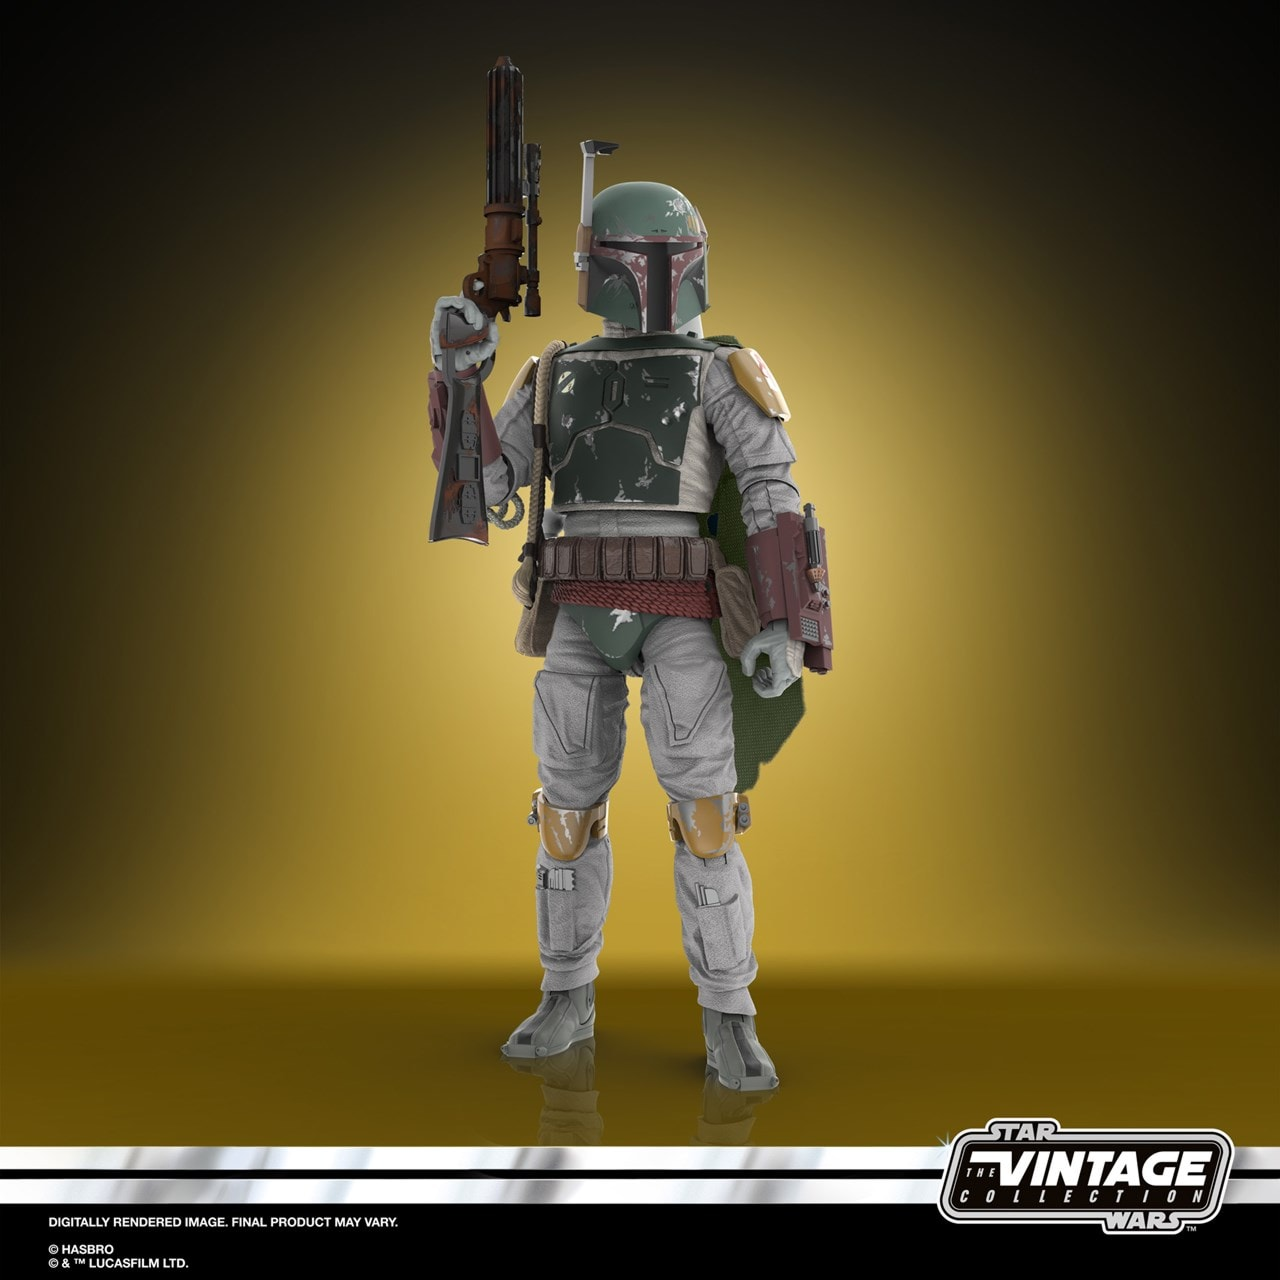 Boba Fett Return Of The Jedi Star Wars Vintage Collection Action Figure Action Figure Free Shipping Over 20 Hmv Store